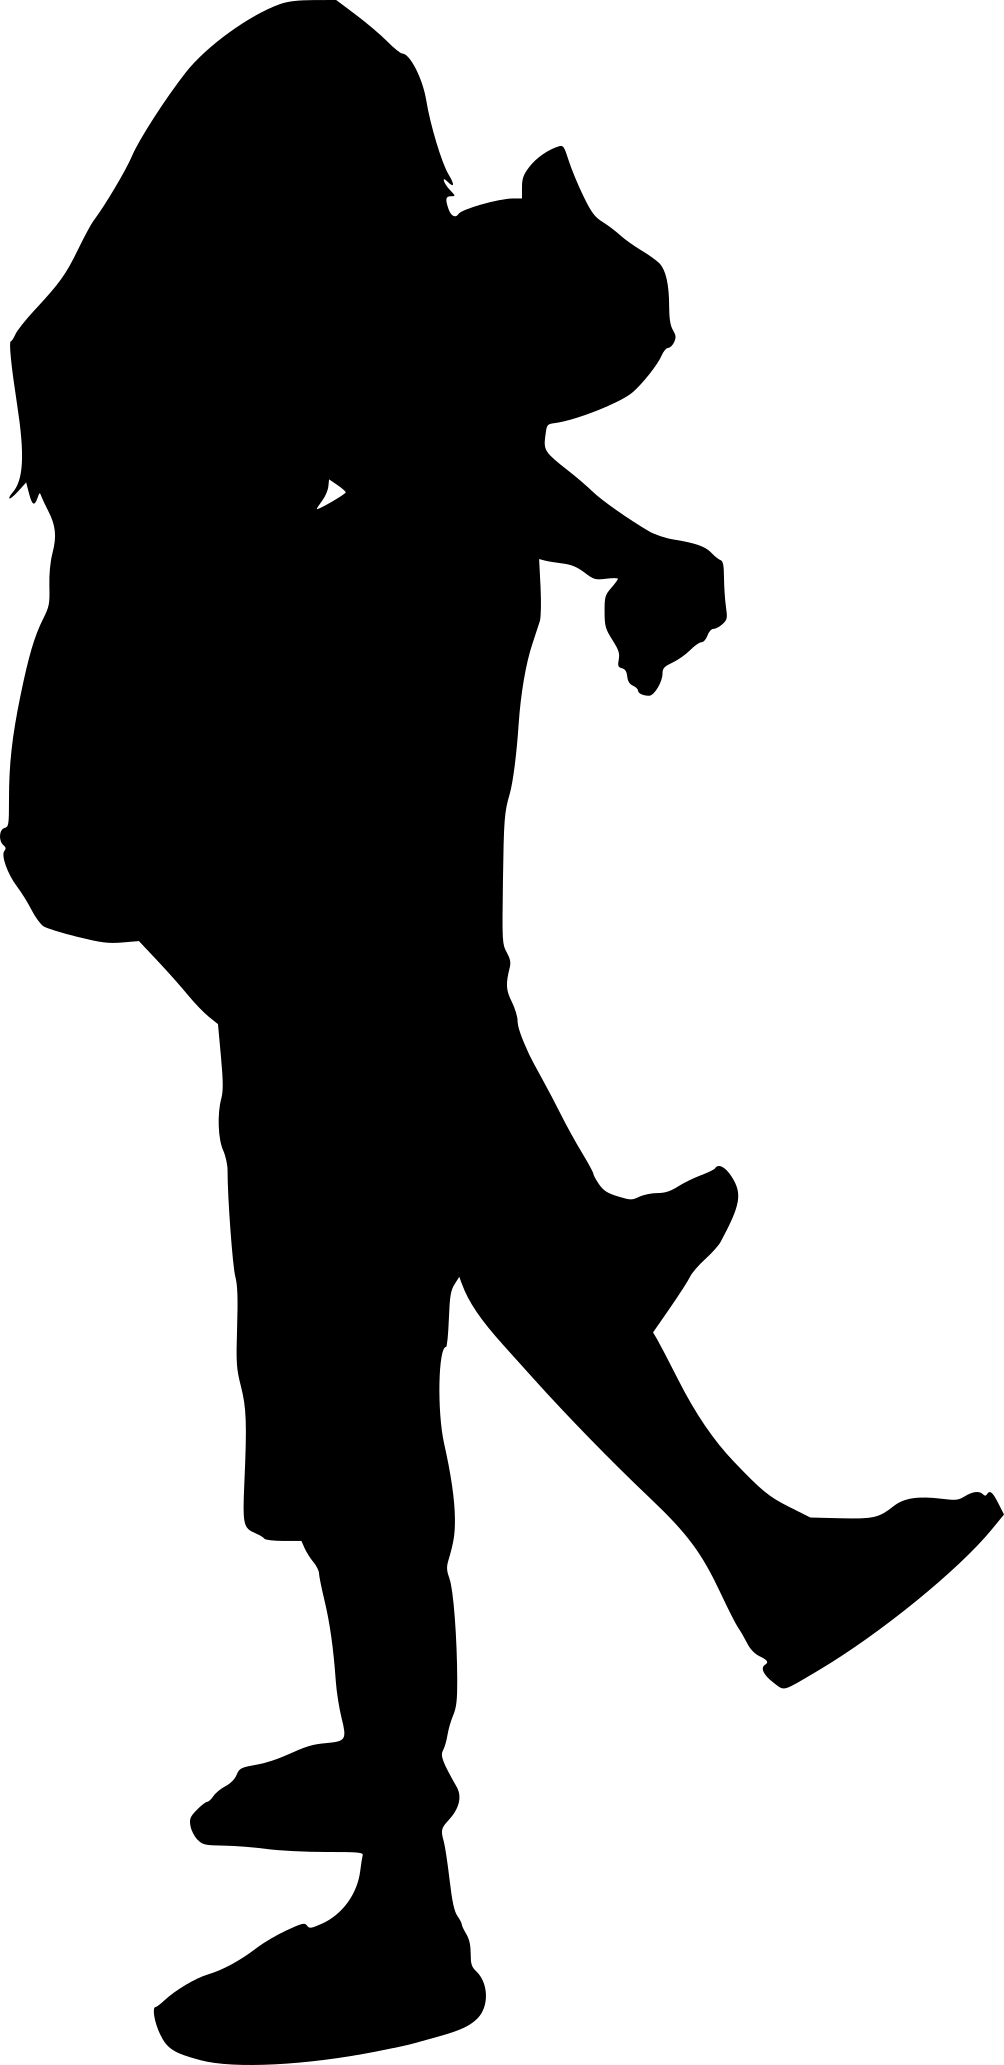 8 People Hugging Silhouette (PNG Transparent)   OnlyGFX.com